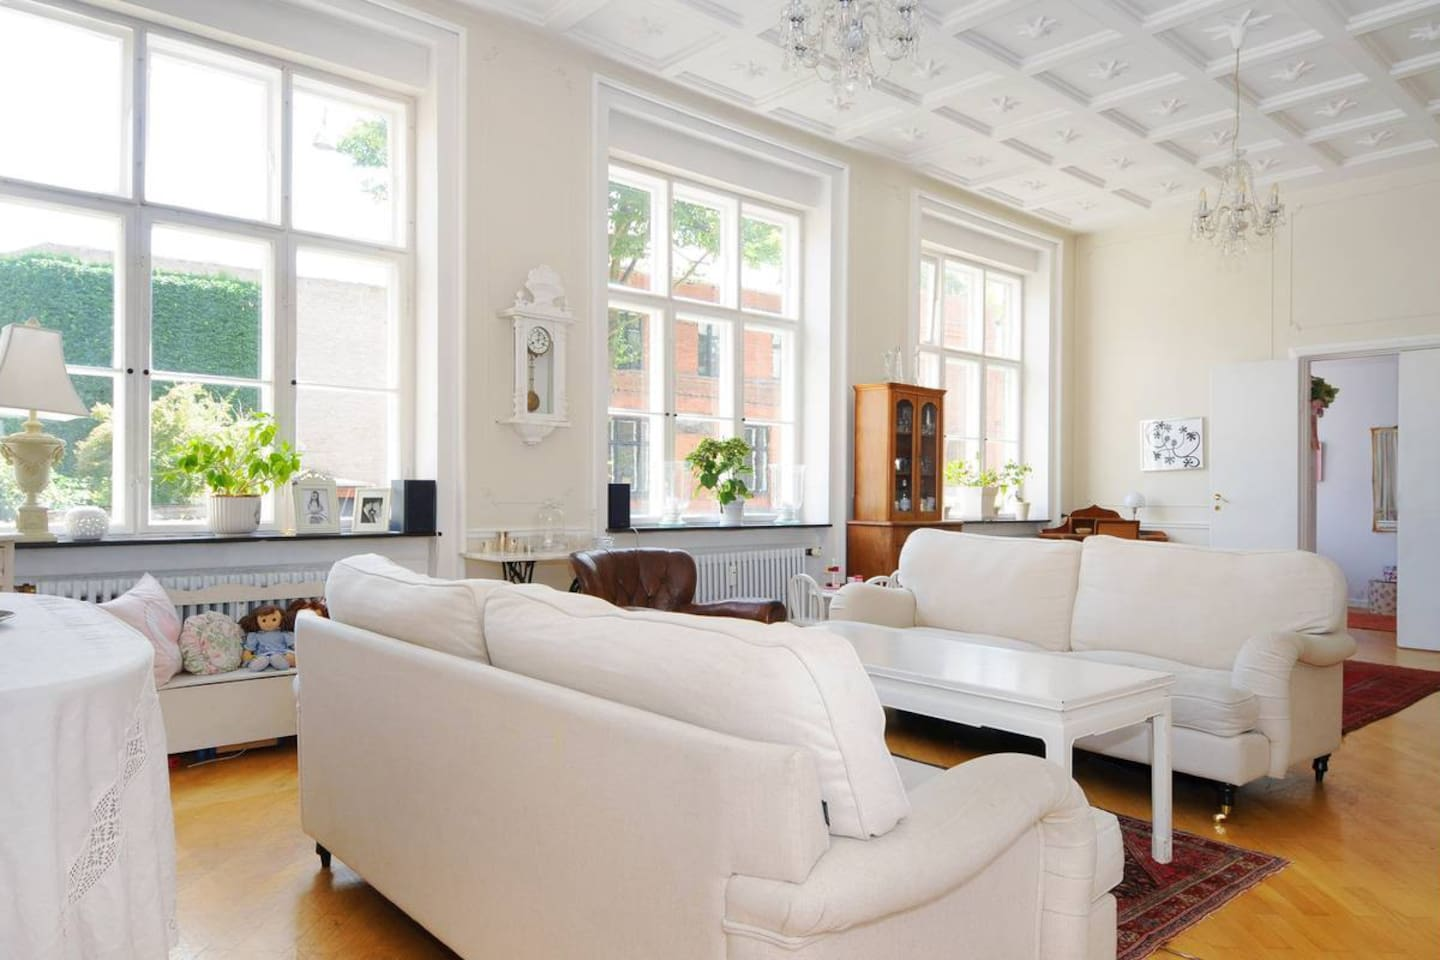 A very bright and spacious room to relax in after a day full of adventure in Copenhagen